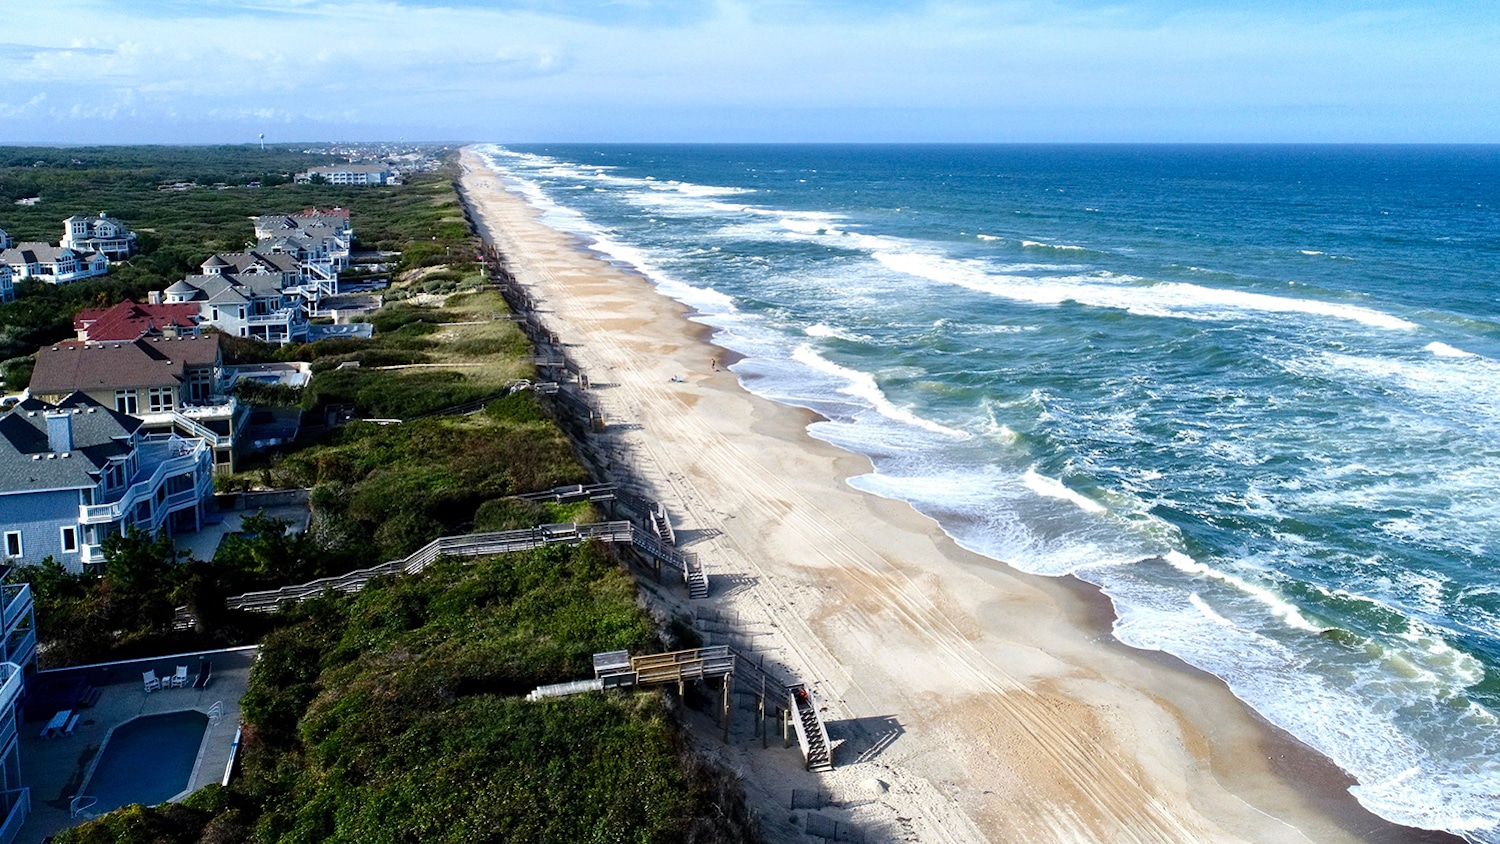 The coast of North Carolina's Corolla Beach in the Outer Banks